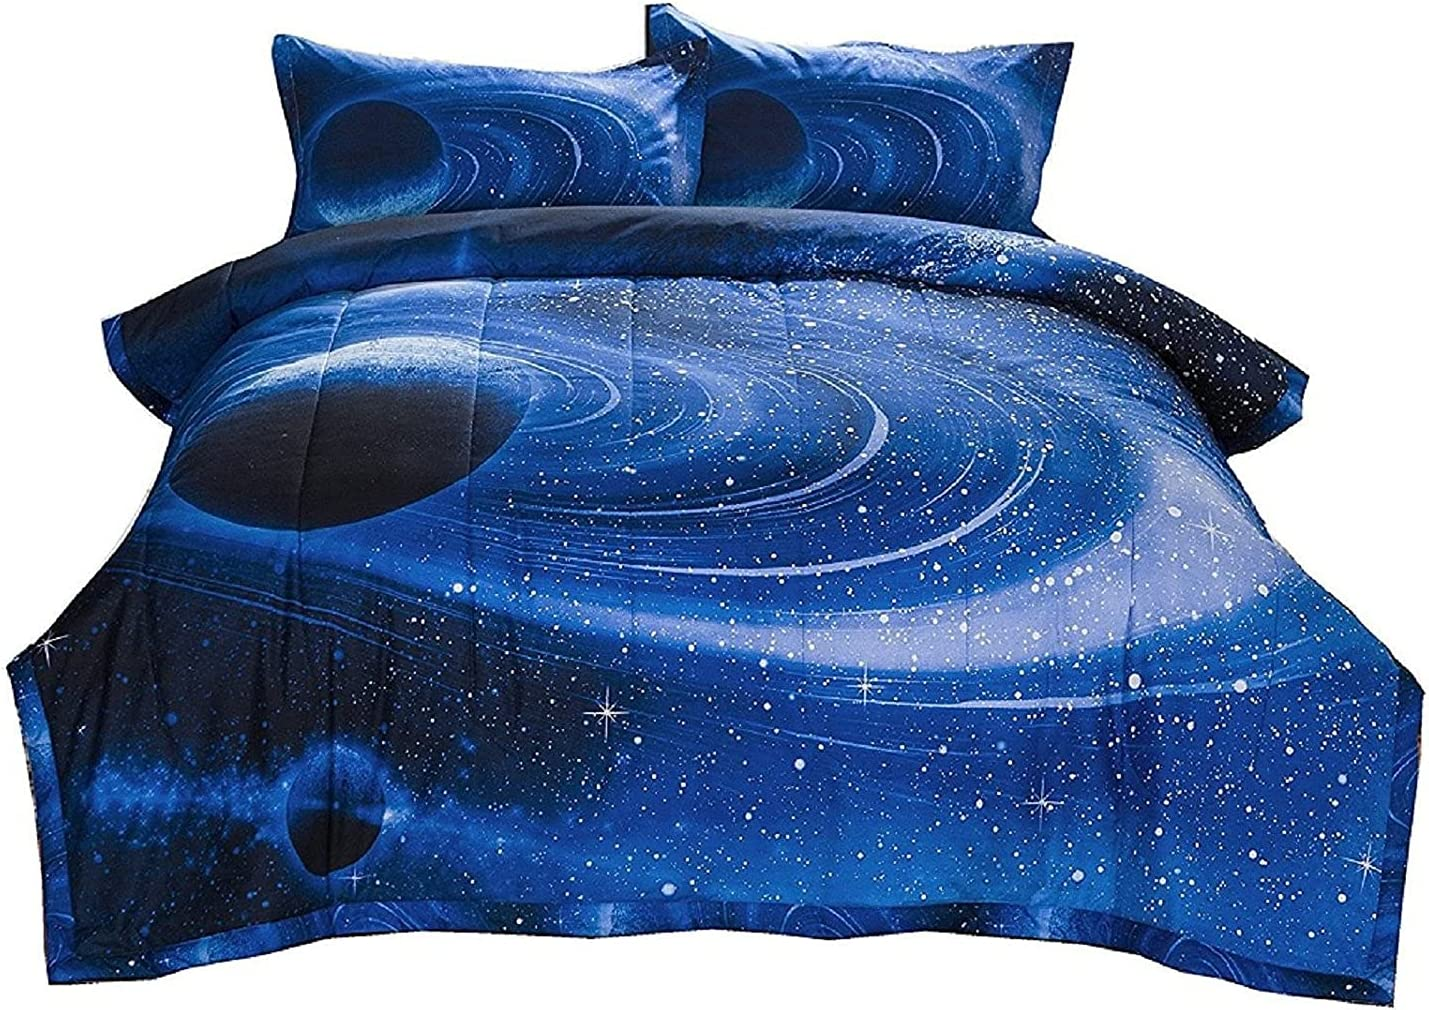 Fees free FLC Galaxy Bedding Sets Cloud with Comforter Bedroom Superior Quilt